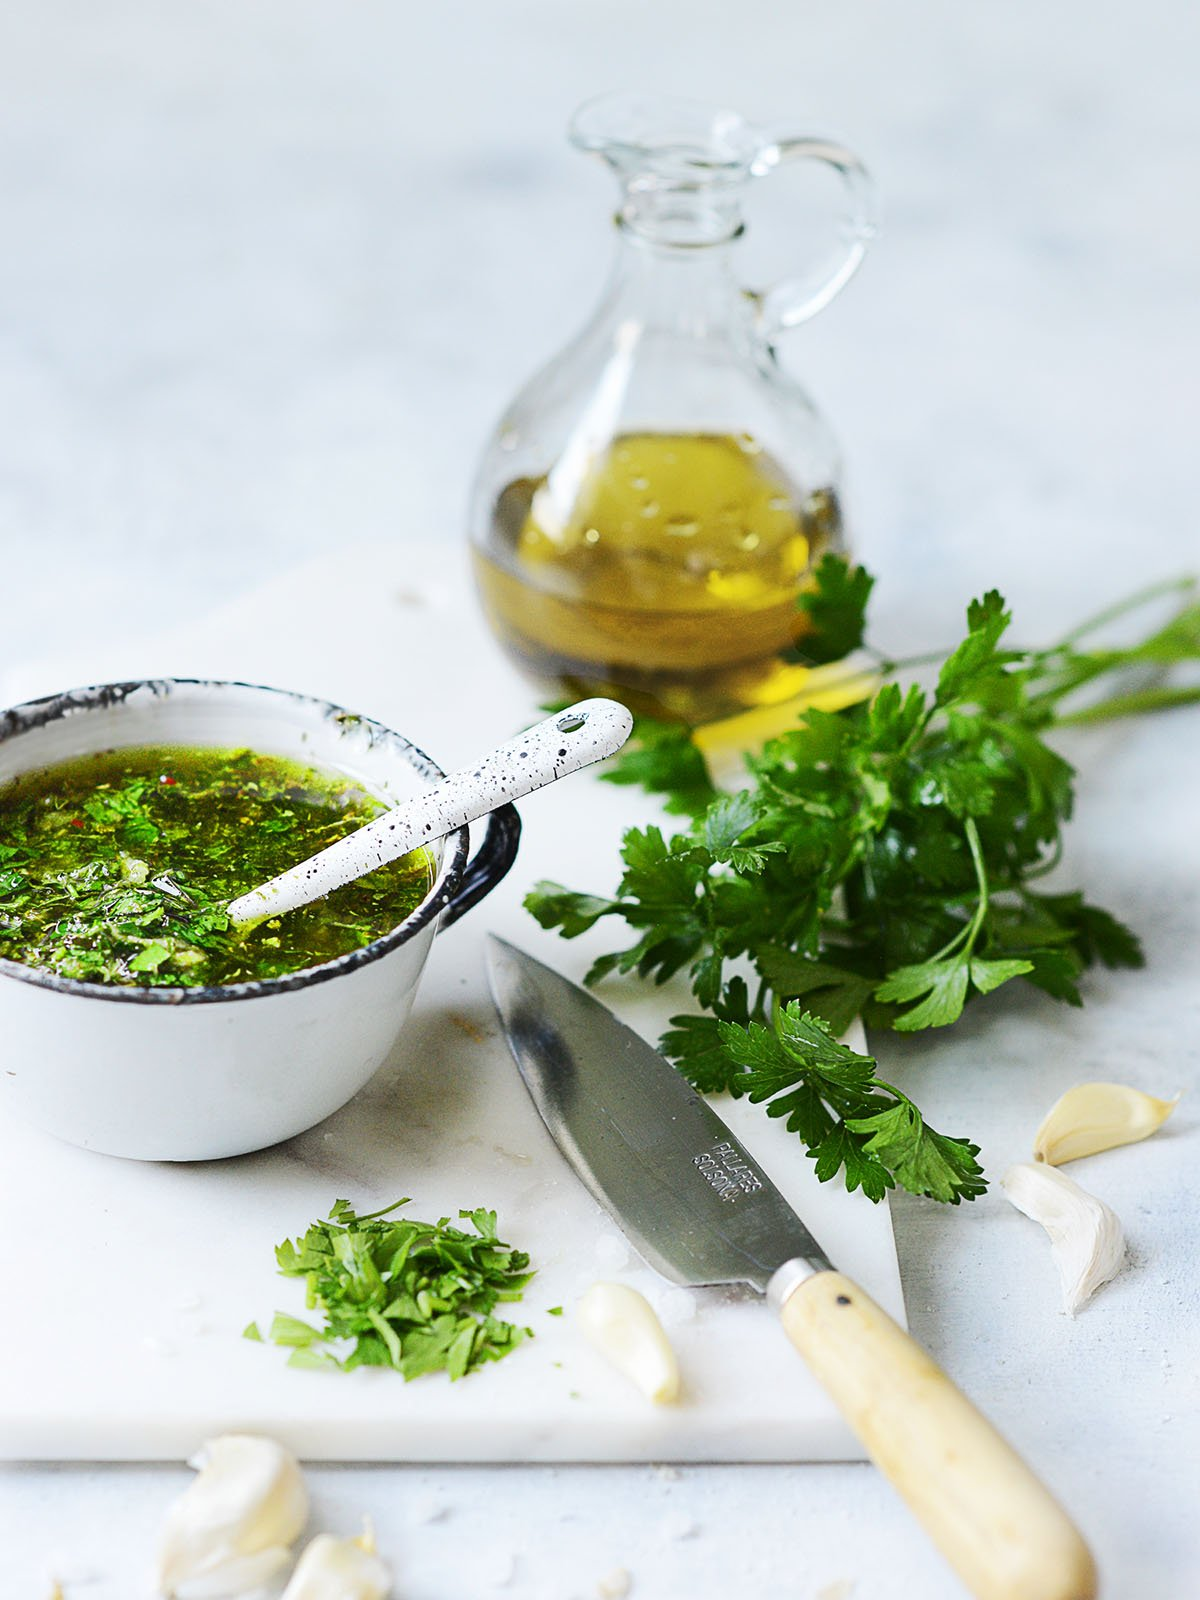 A cutting board with garlic, parsley, a knife and a cup with chimichurri